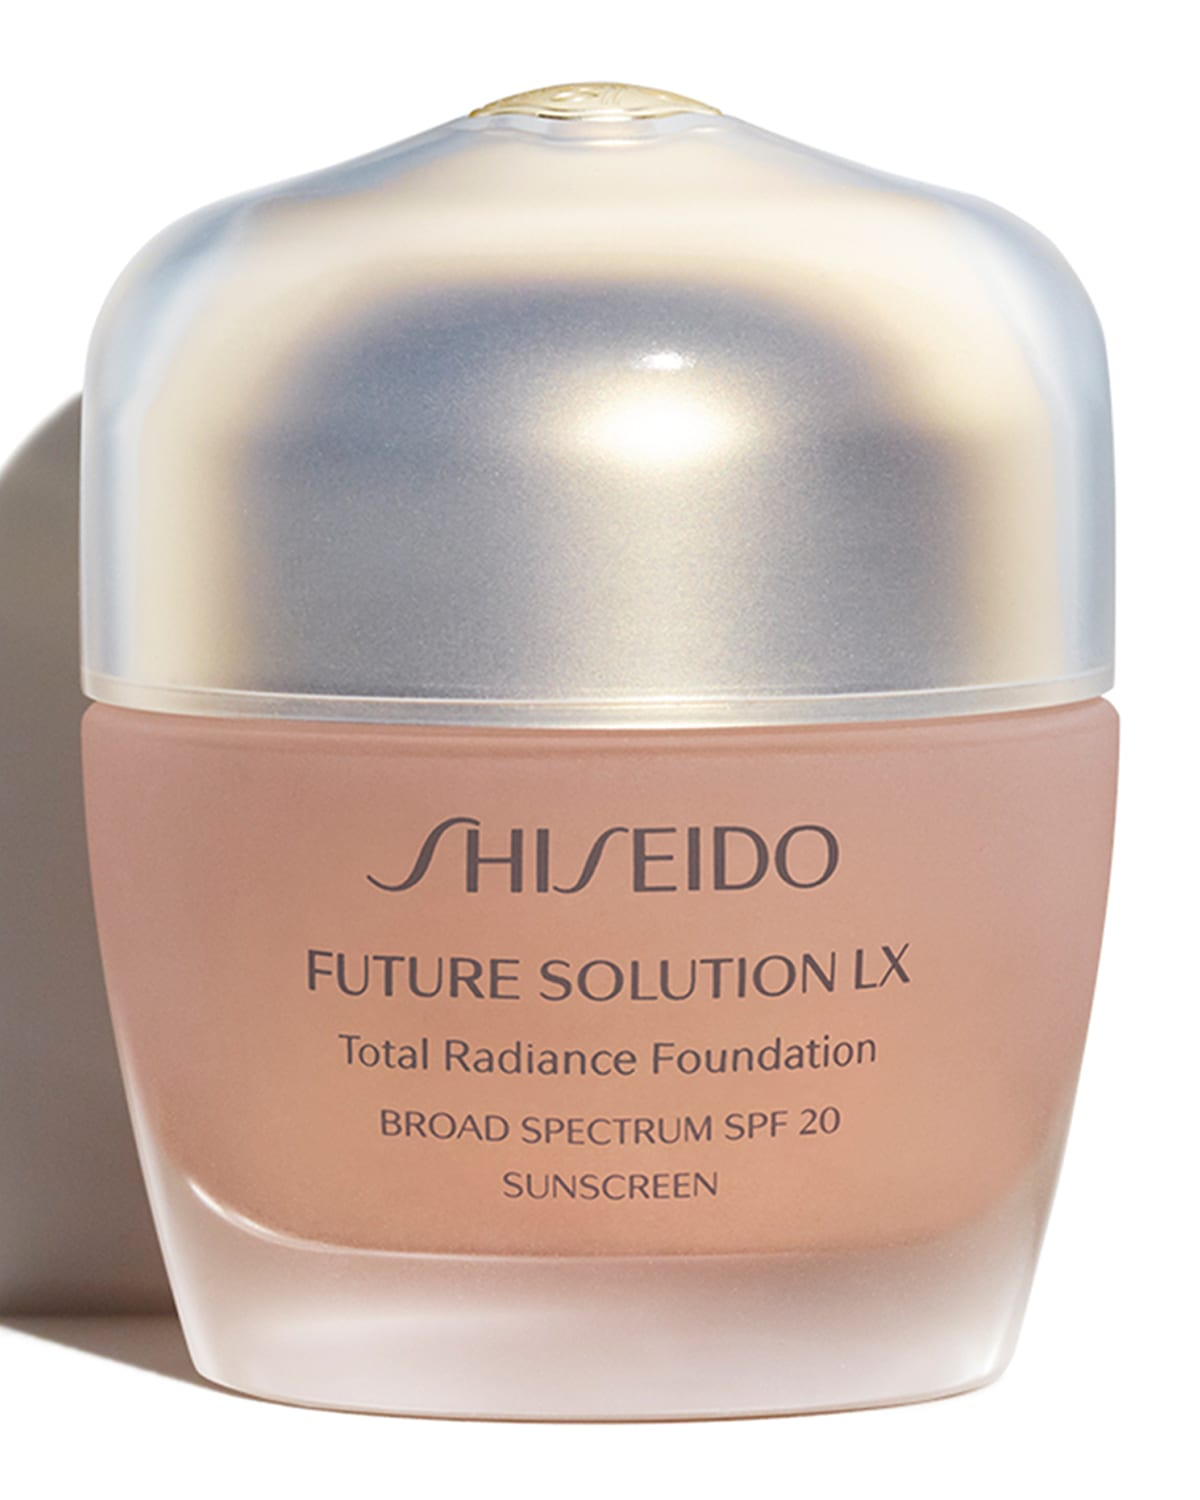 Future Solution LX Total Radiance Foundation Broad Spectrum SPF 20 Sunscreen